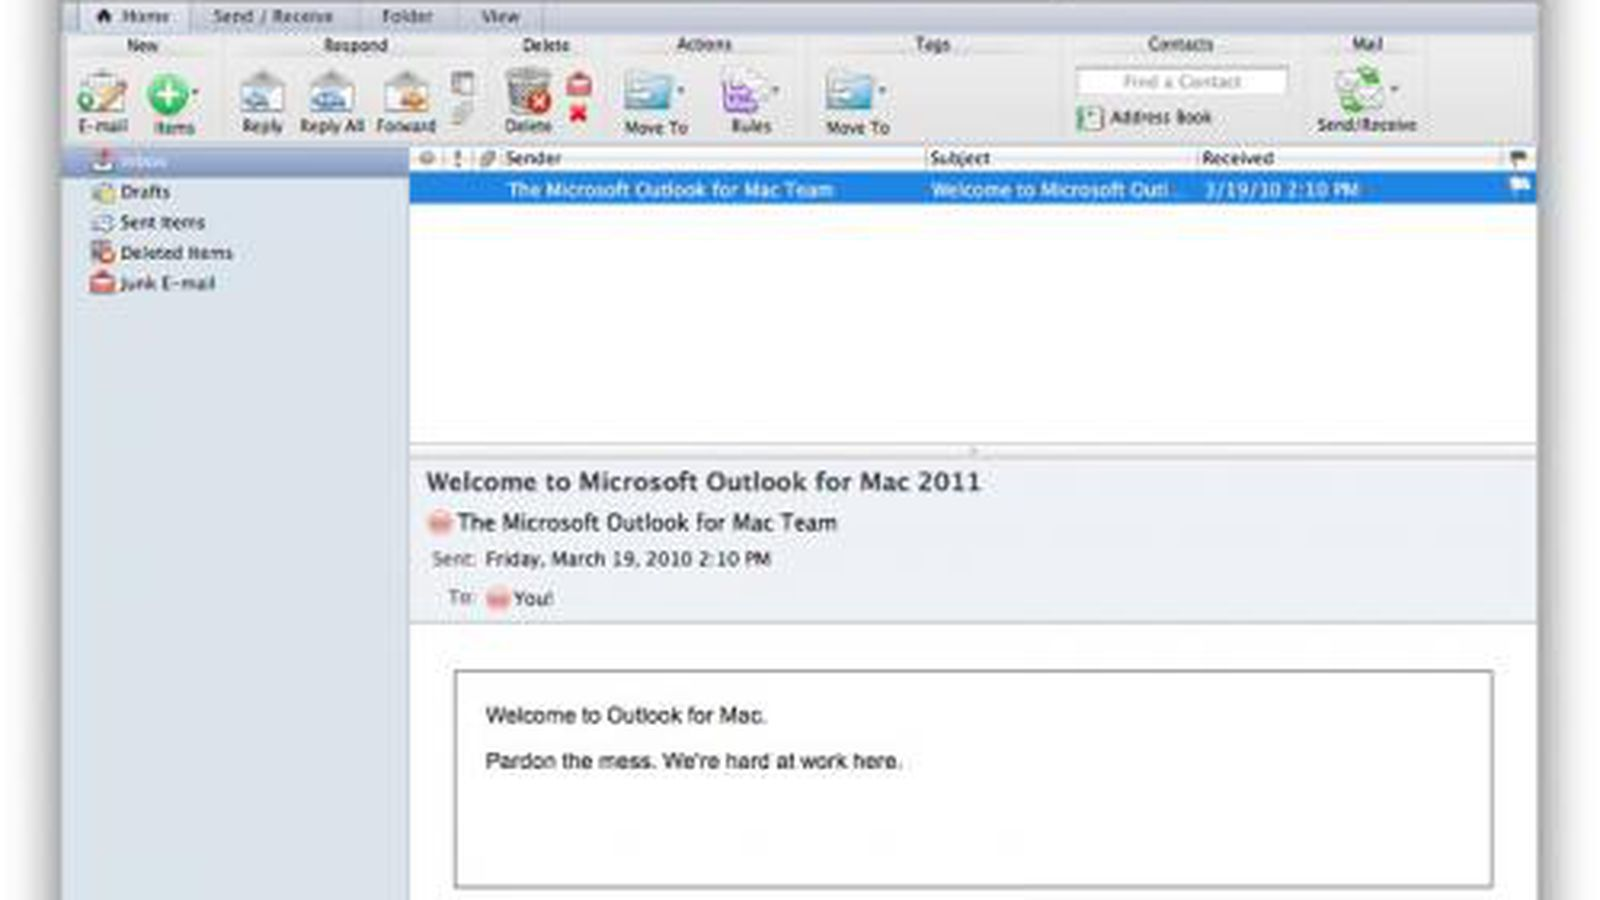 Outlook 2011 for mac updates